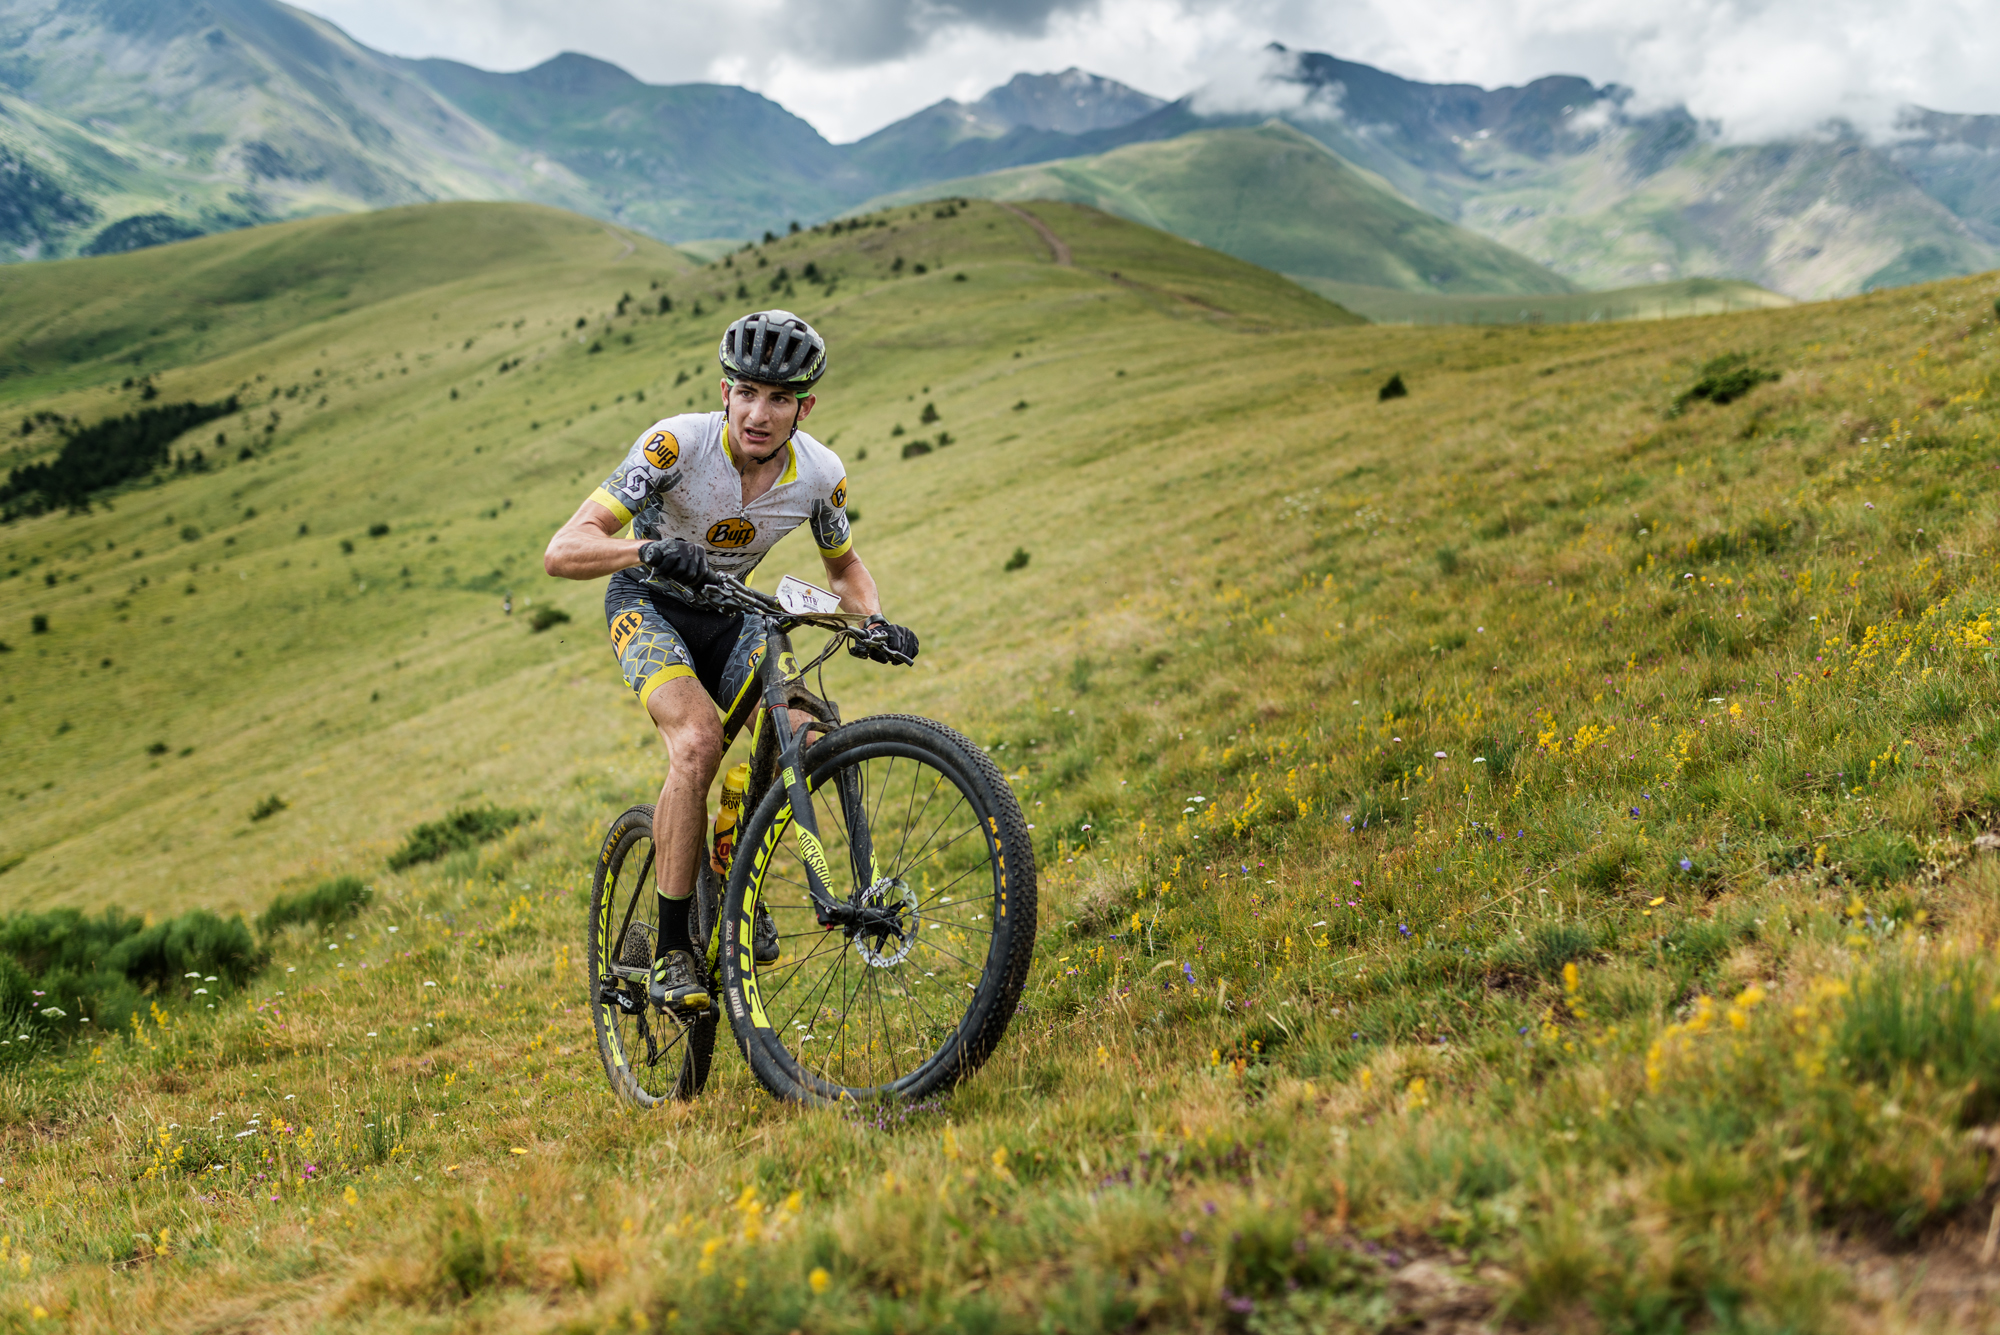 Discover quintessential mountain biking with the Marathon Cup by Scott & Taymory in Vall de Bo�